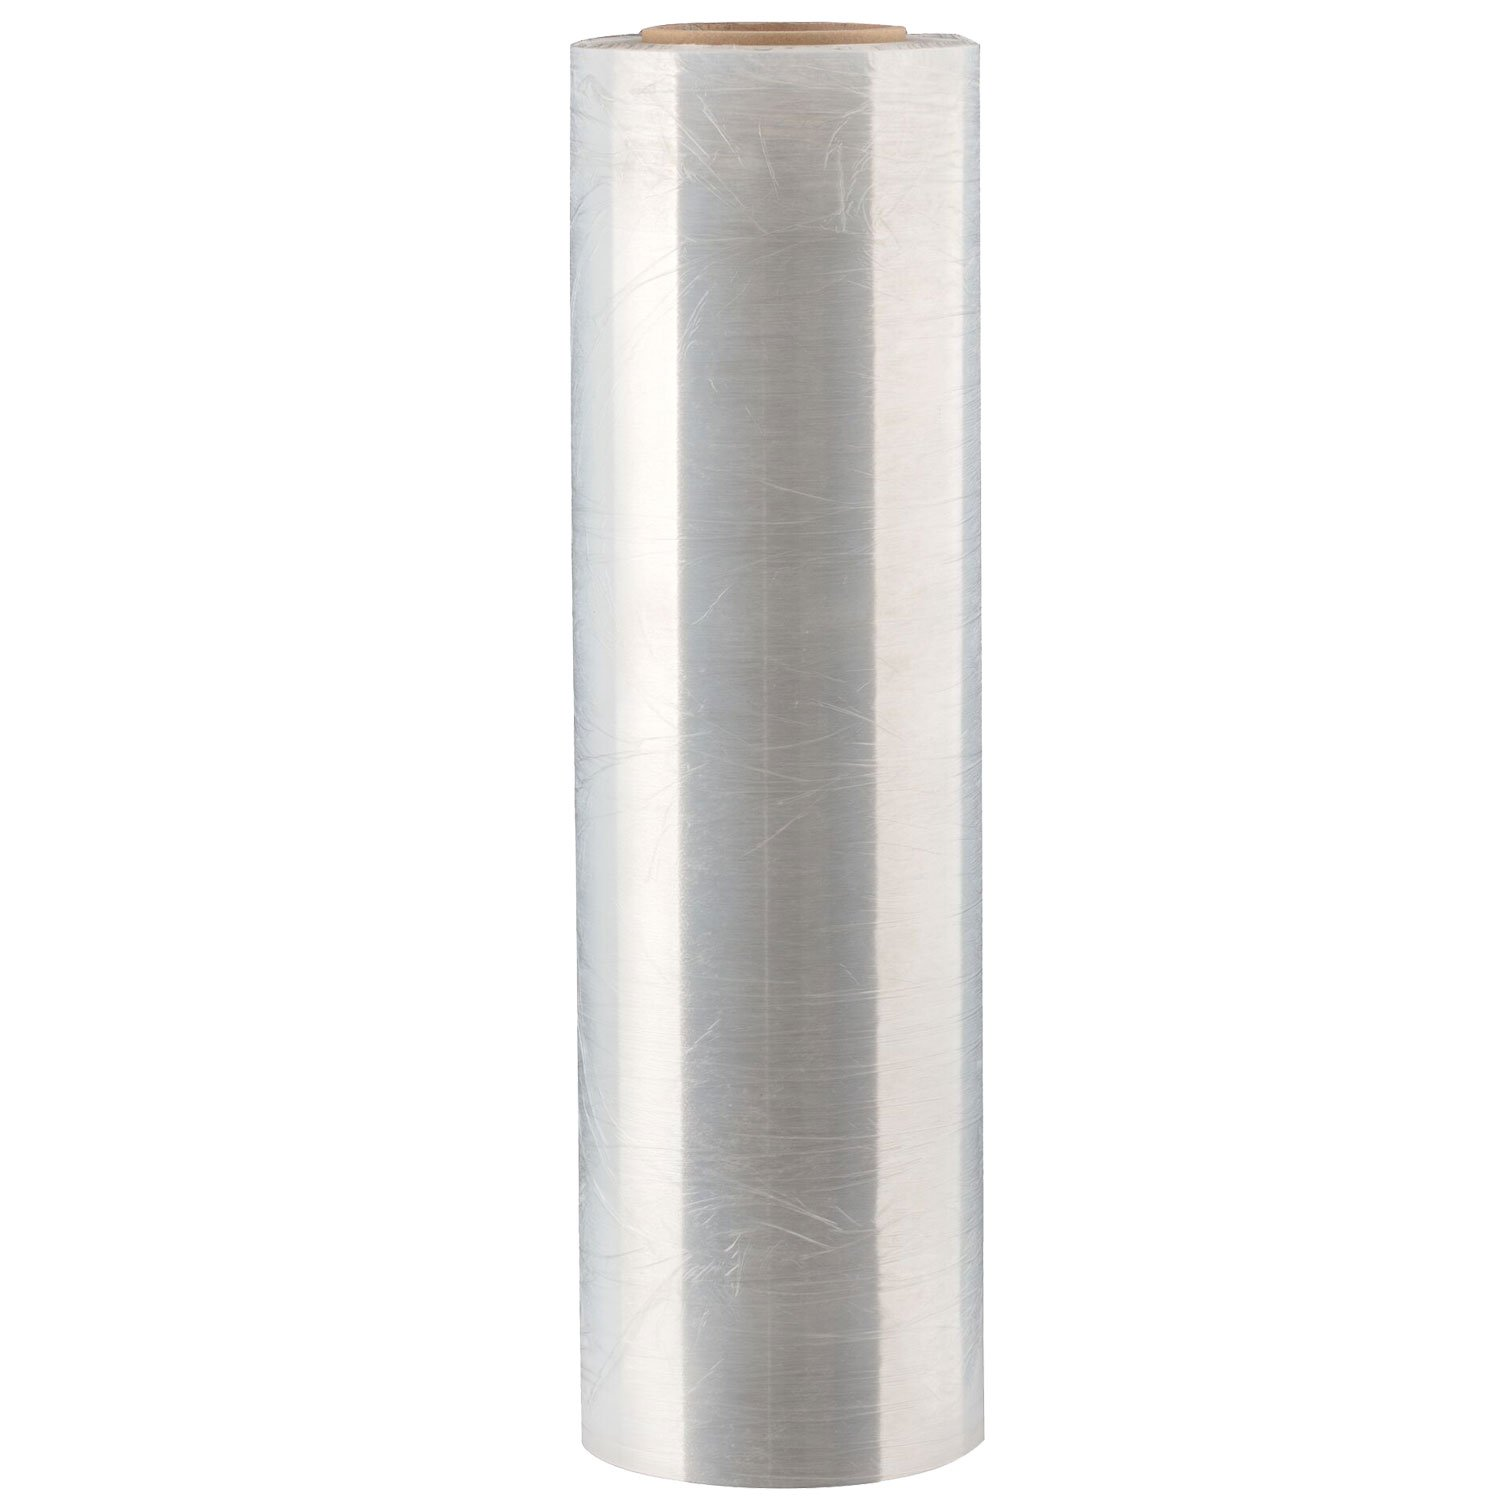 LTB 2070 Stretch Wrap Film, 70 Gauge, 18'' x 1500 Ft Per Roll, Clear (Pack of 4) by LTB MFG (Image #3)